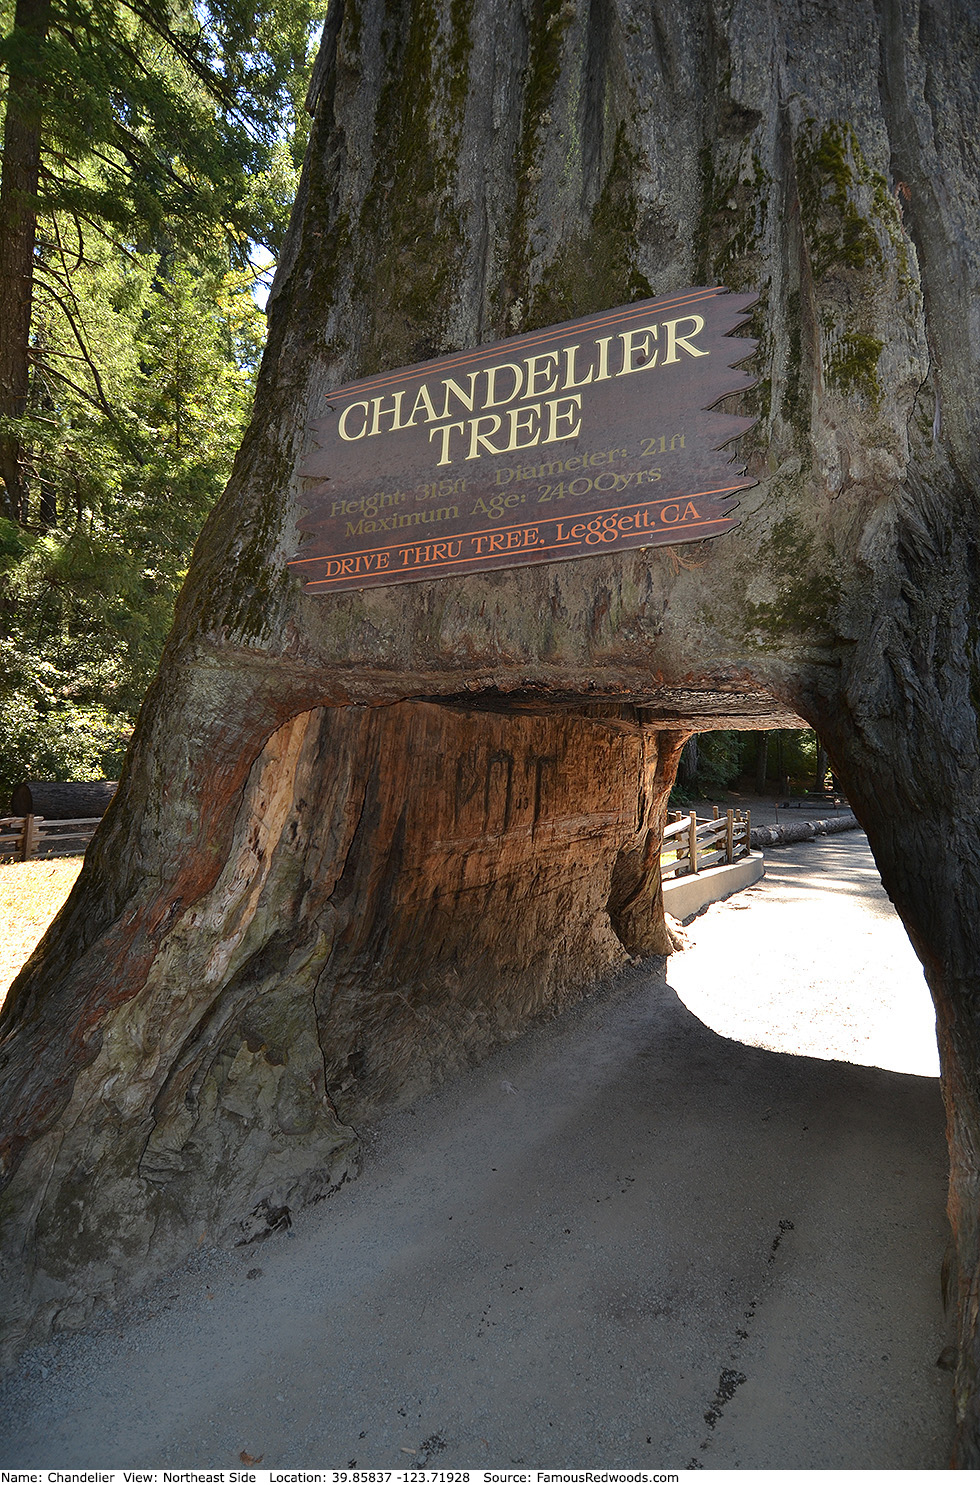 Chandelier tree famous redwoods chandelier drive thru tree aloadofball Choice Image